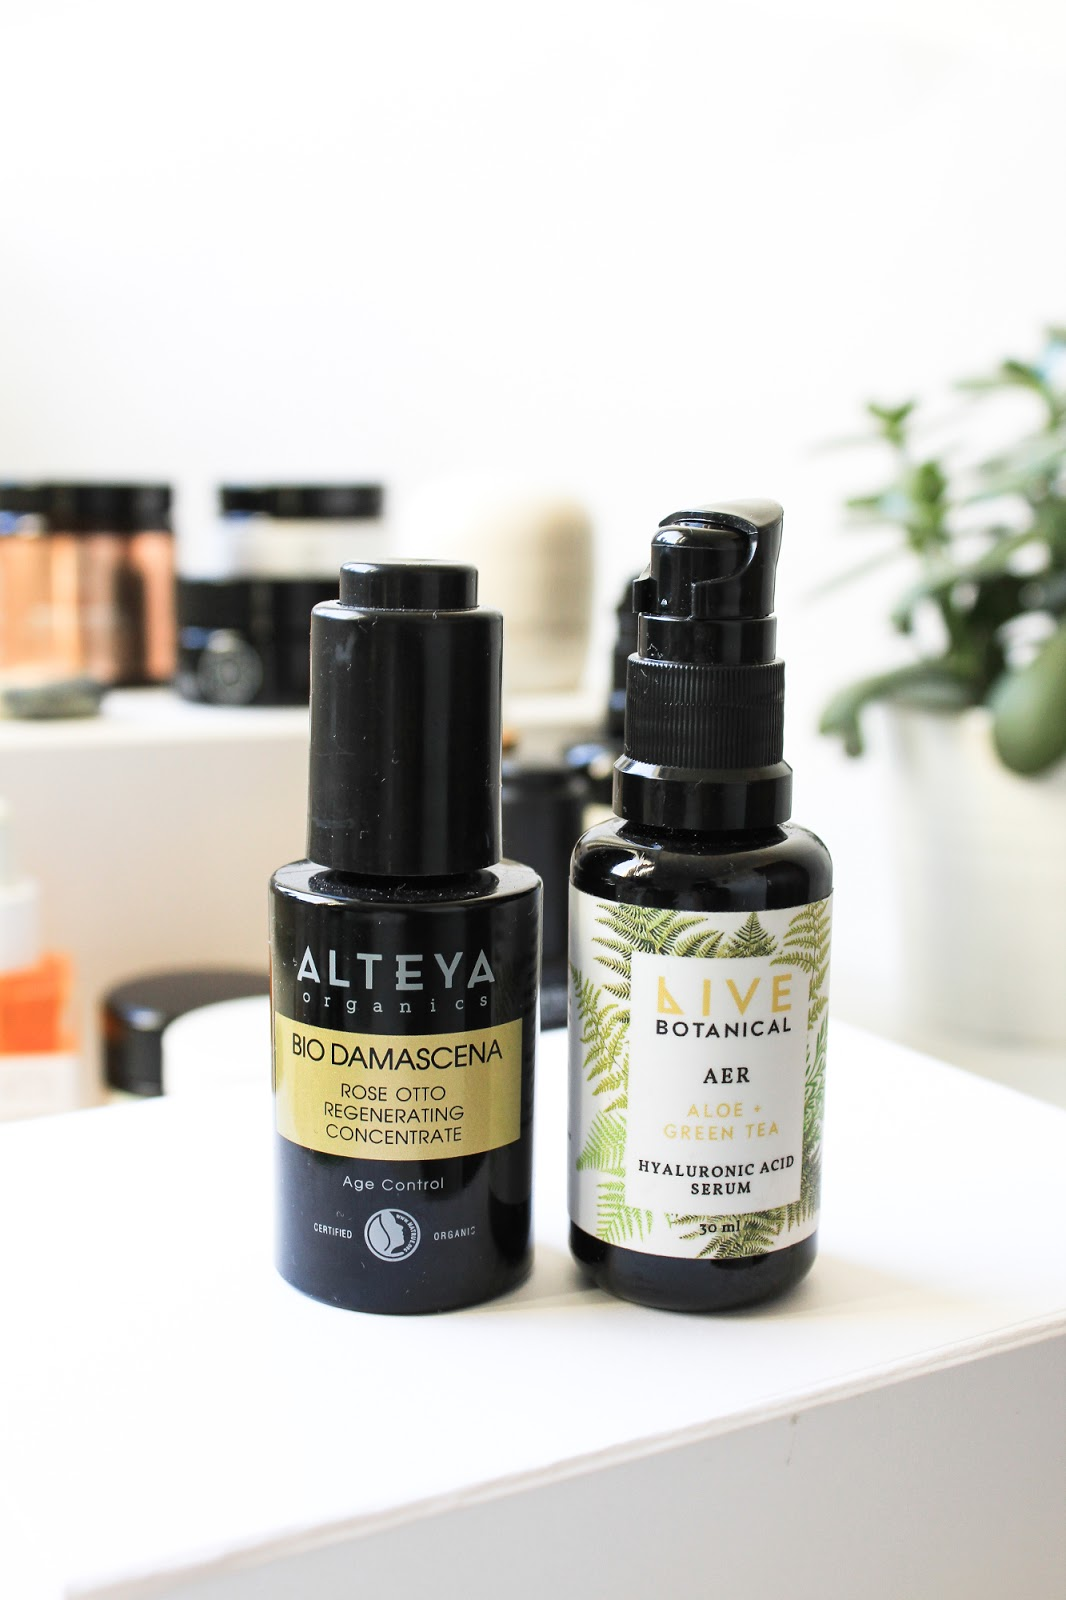 Alteya Organics Rose Otto Regenerating Concentrate Love Lula, Live Botanical AER Hyaluronic Acid Serum